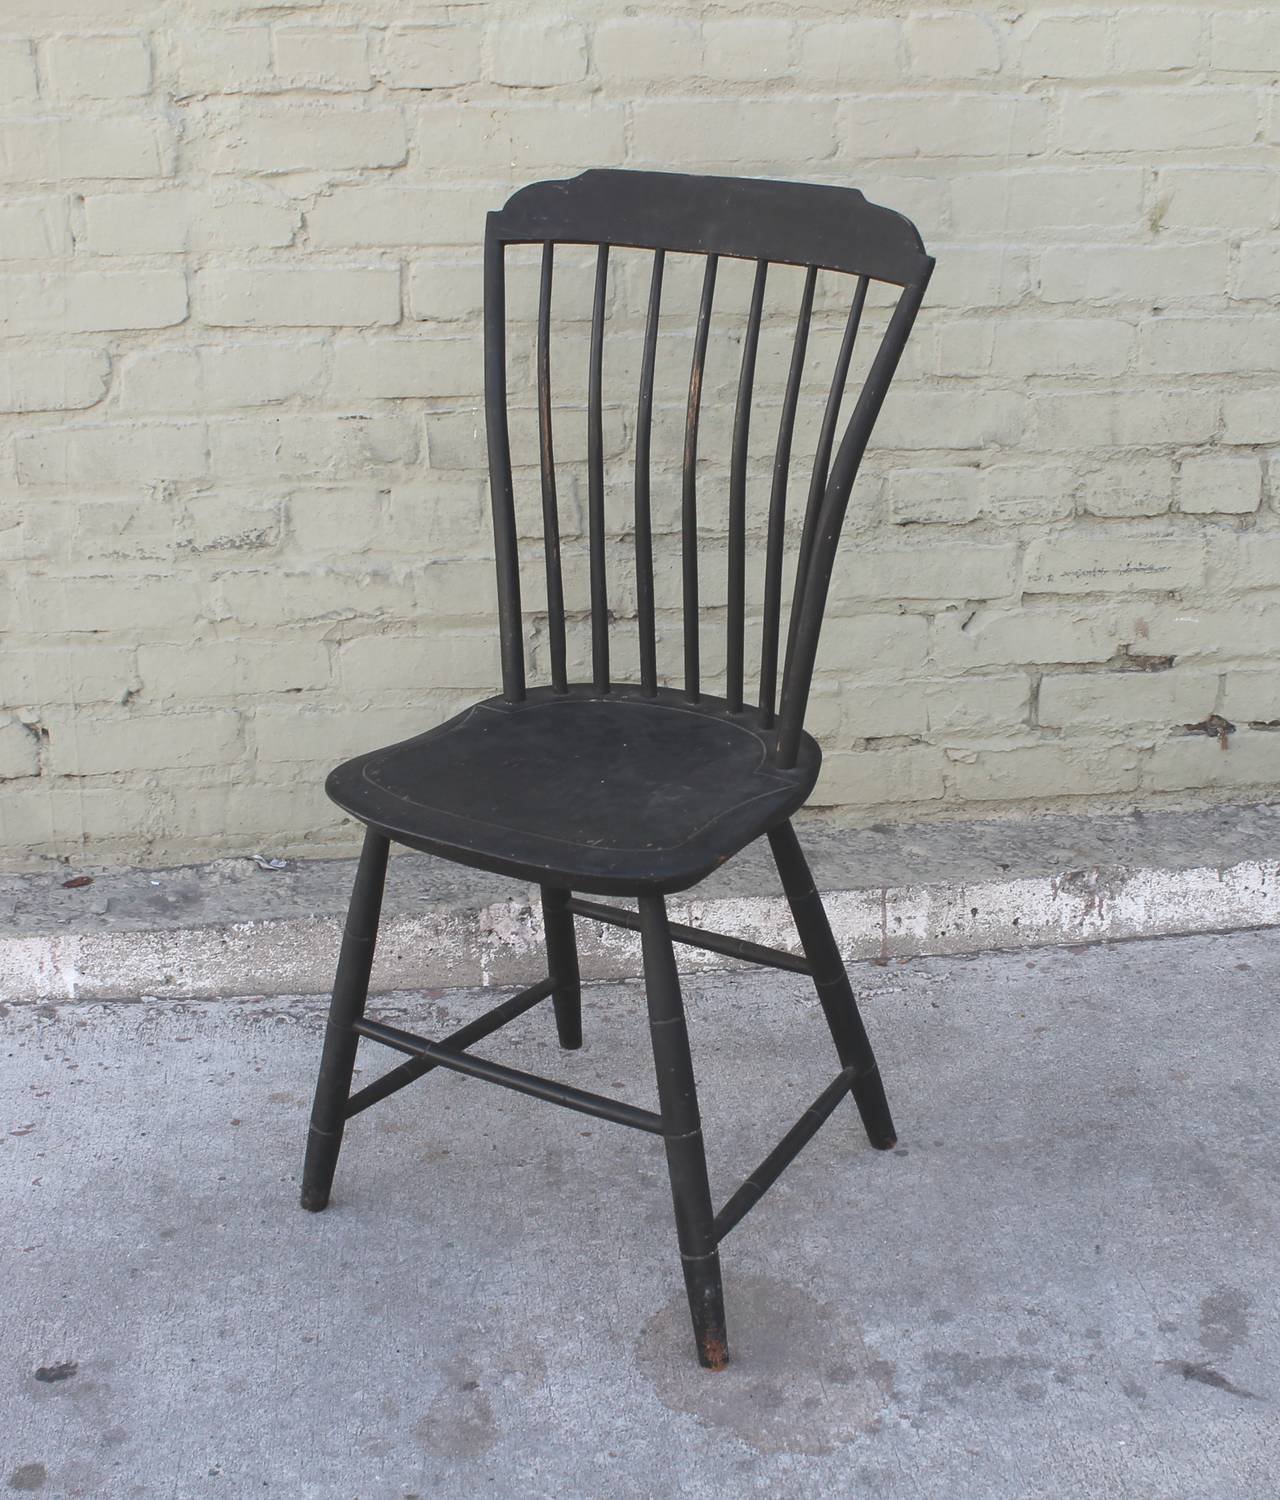 Original Black Painted Step Down New England Windsor Chair Dated